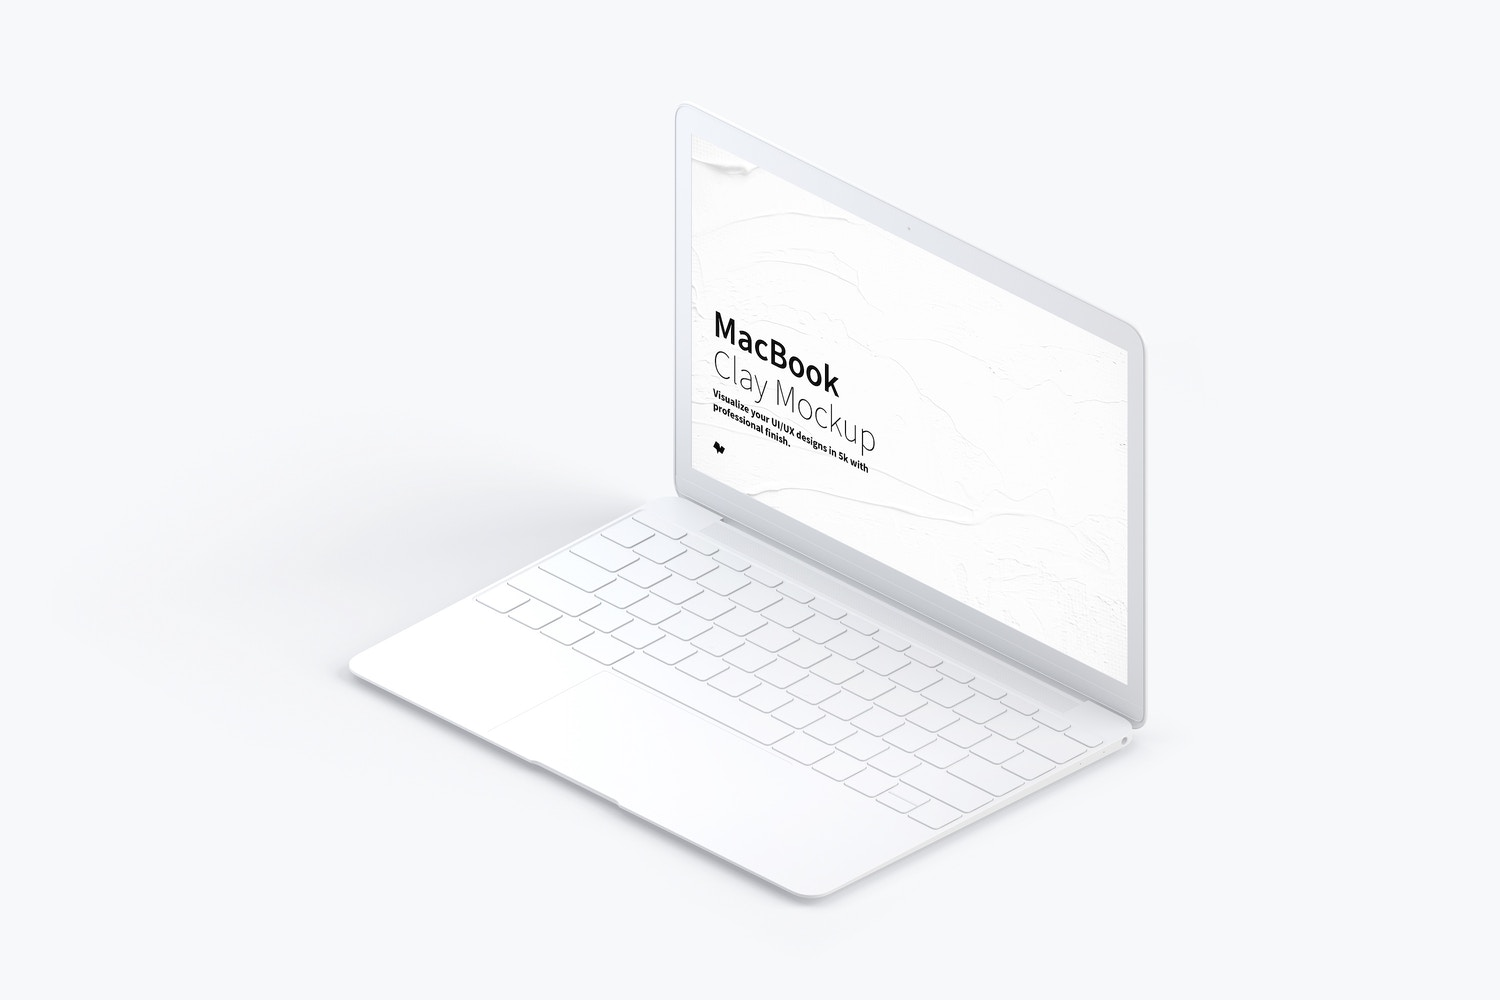 Clay MacBook Mockup, Isometric Right View by Original Mockups on Original Mockups